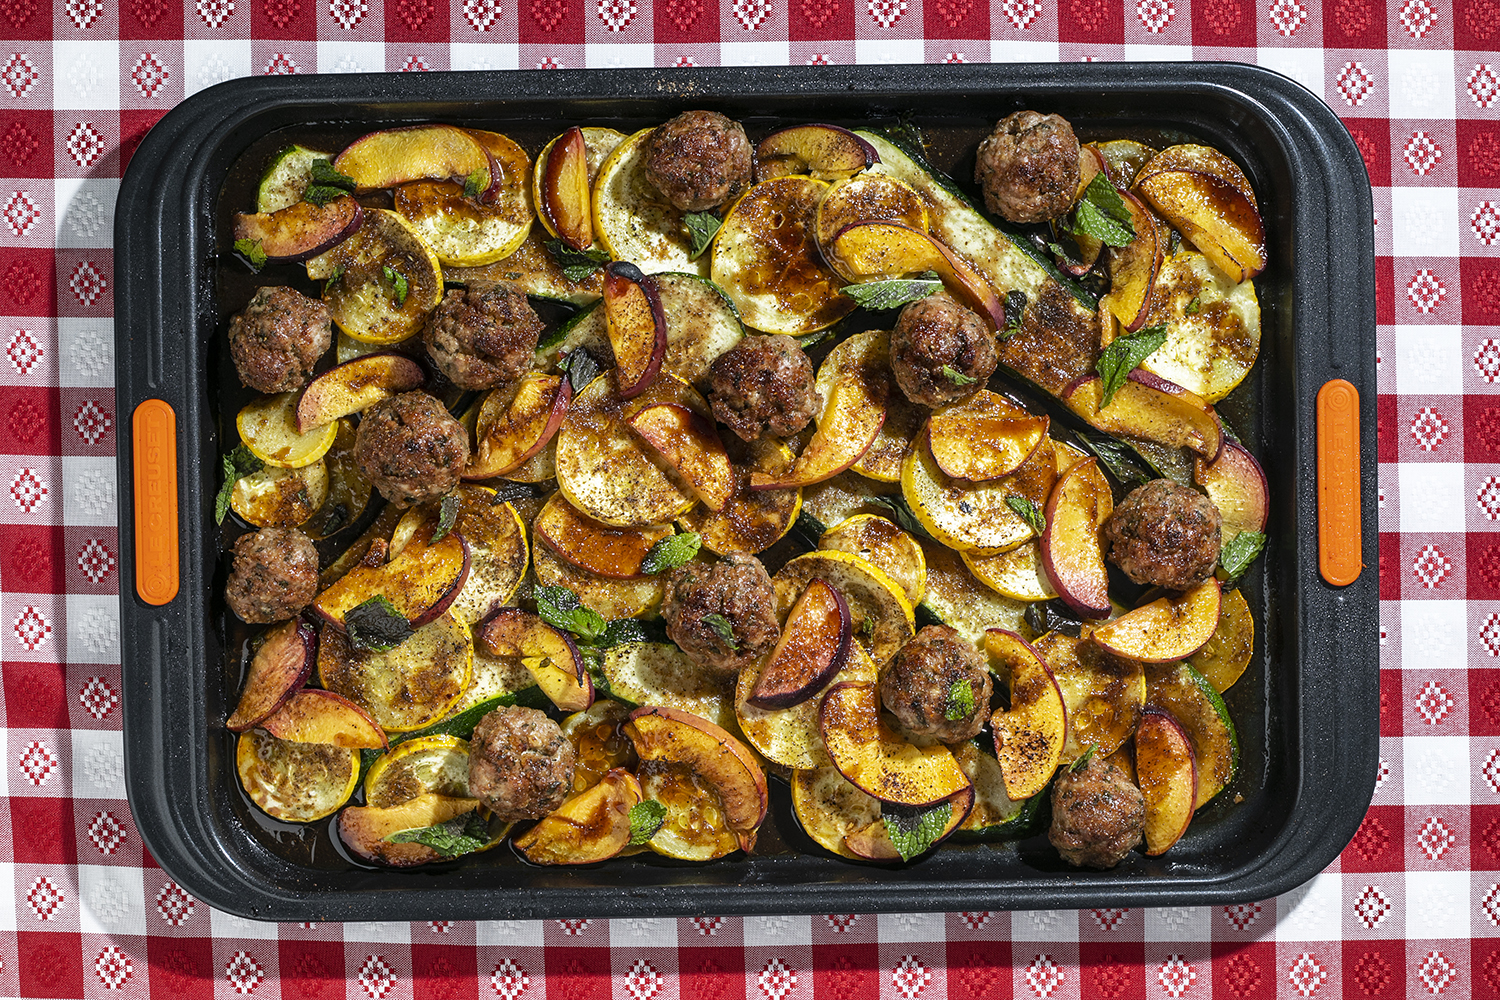 Sheet Pan Tingly Meatballs with Charred Peaches and Summer Squash